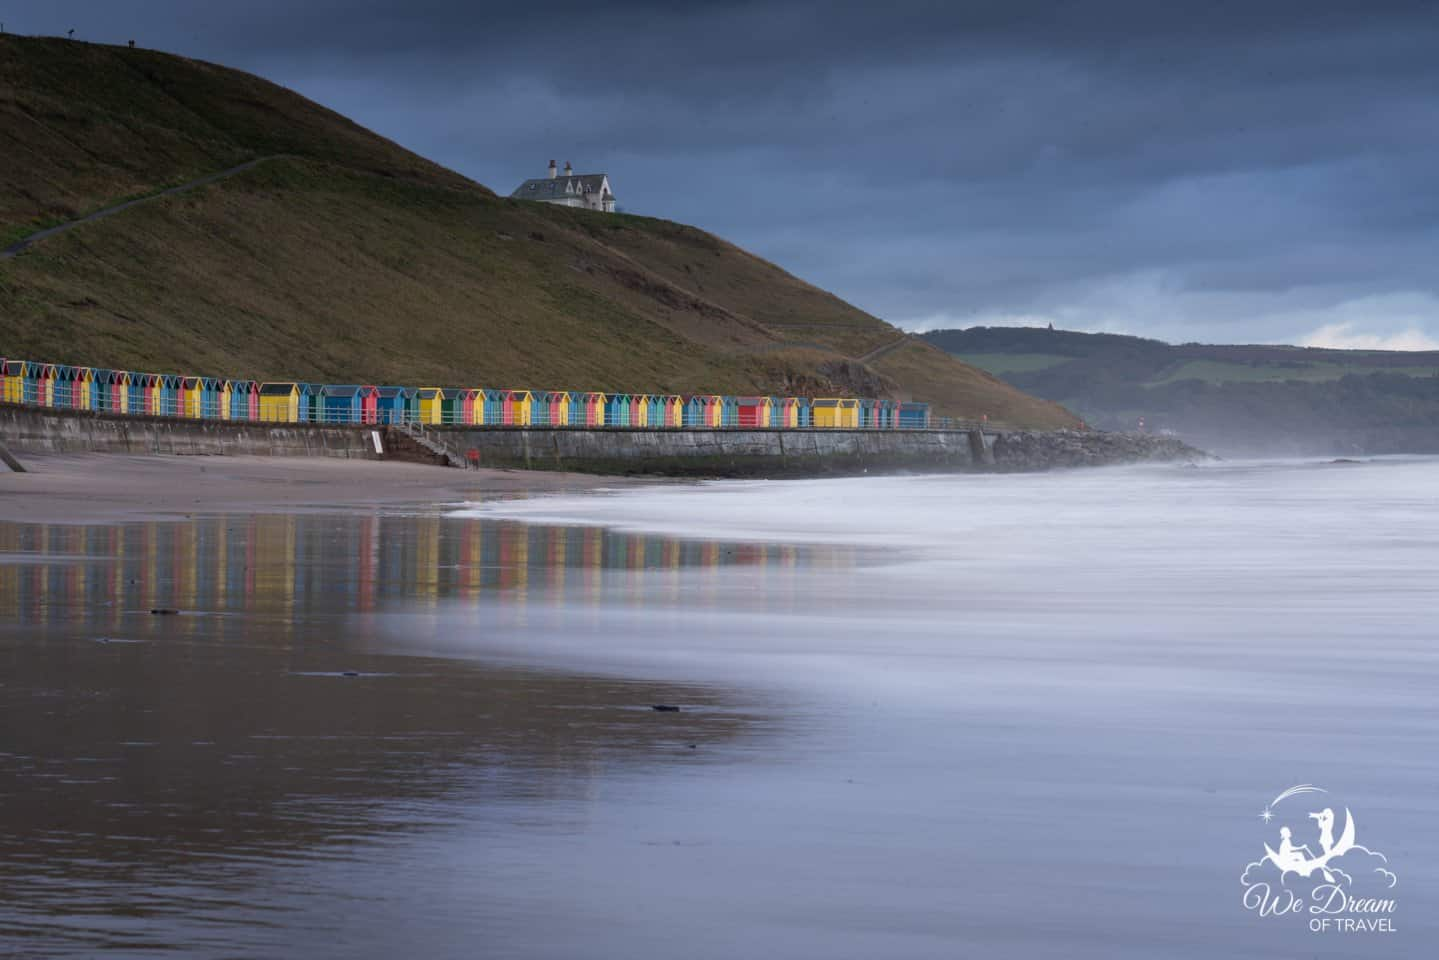 Long exposure photograph of Whitby Sands beach with colourful beach huts lining the seafront.